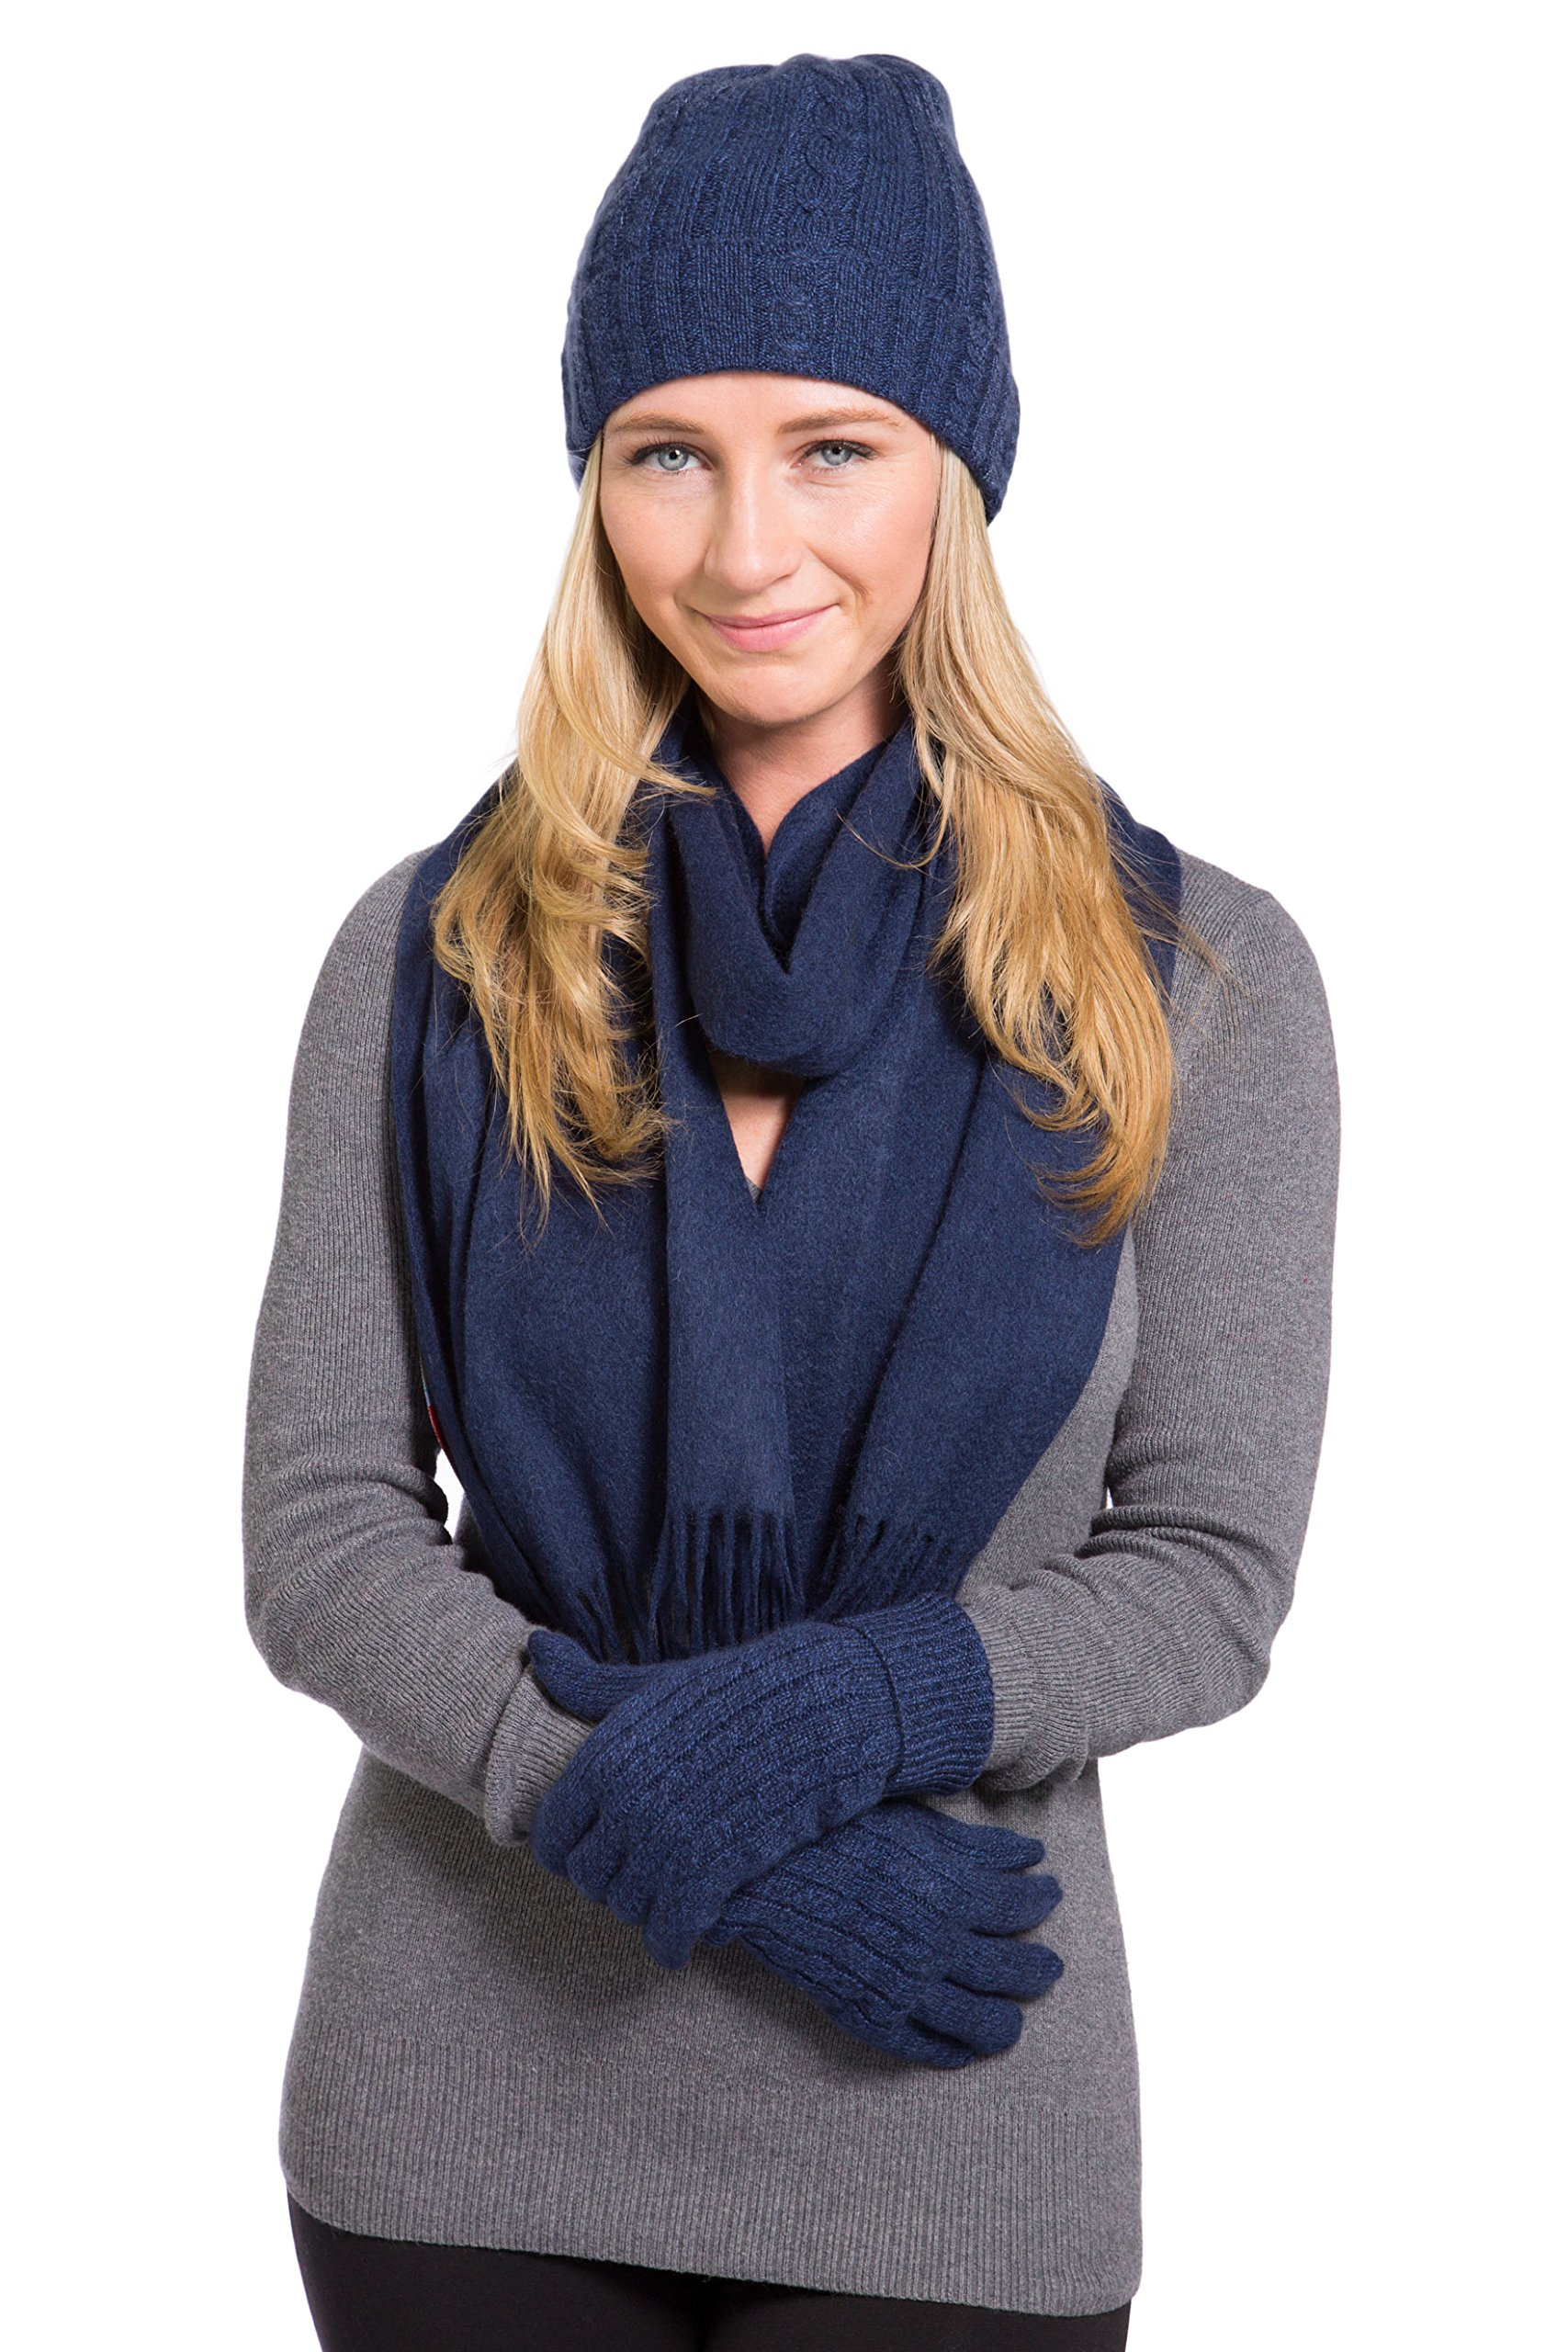 Fishers Finery Women's 100% Cashmere 3pc Winter Set; Gift Box (Hthr Nvy)